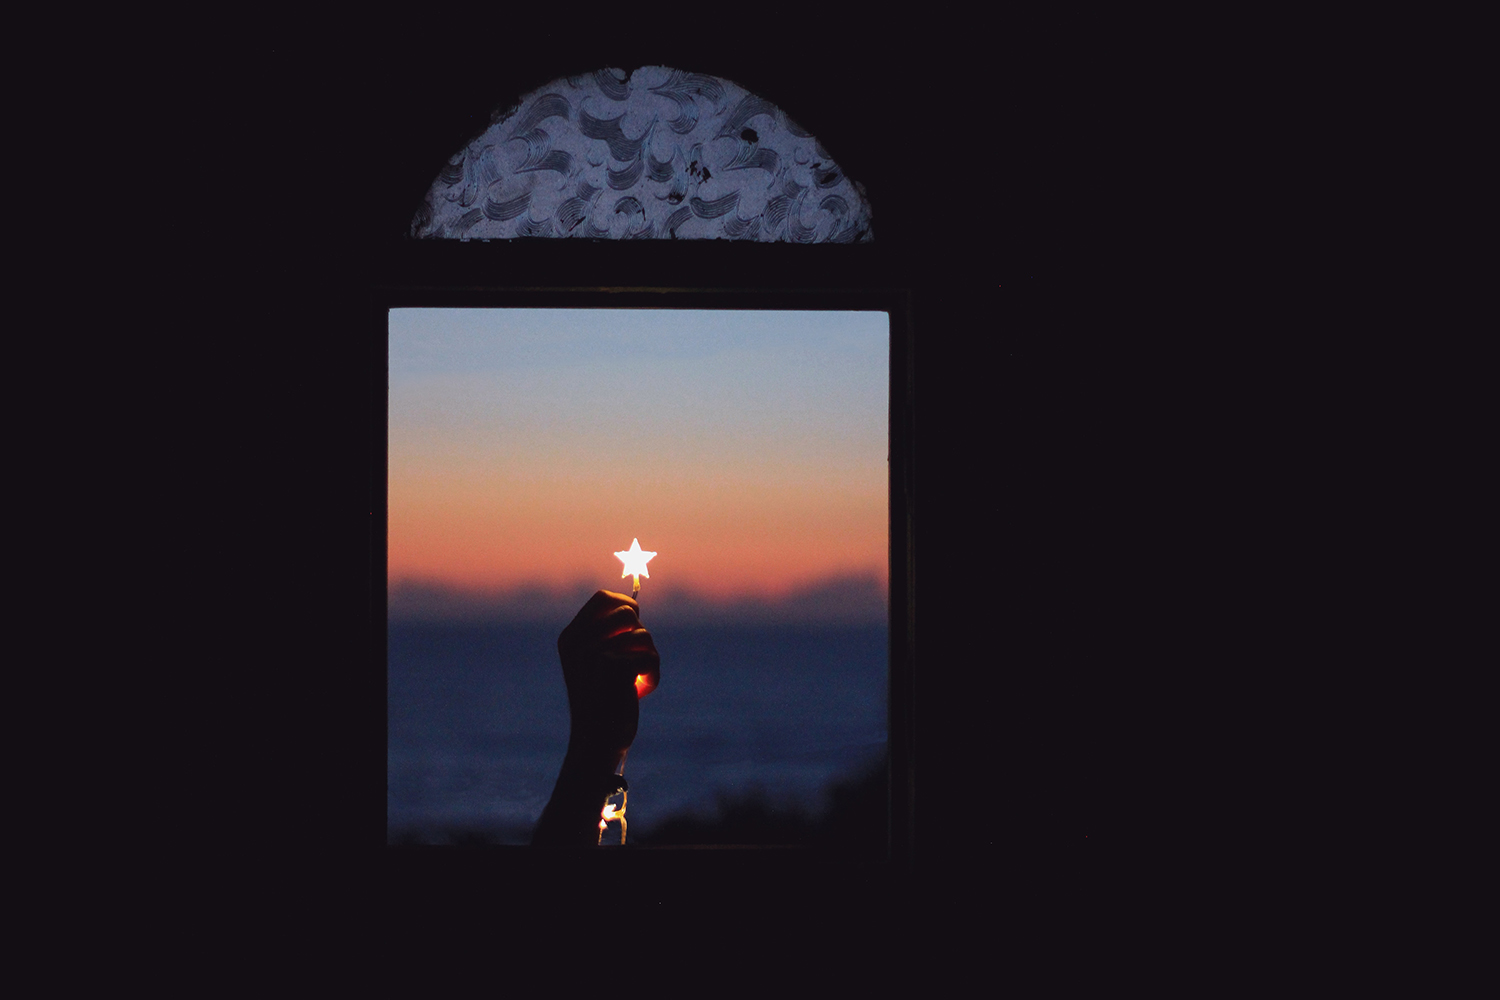 Star in a Window Held By a Hand